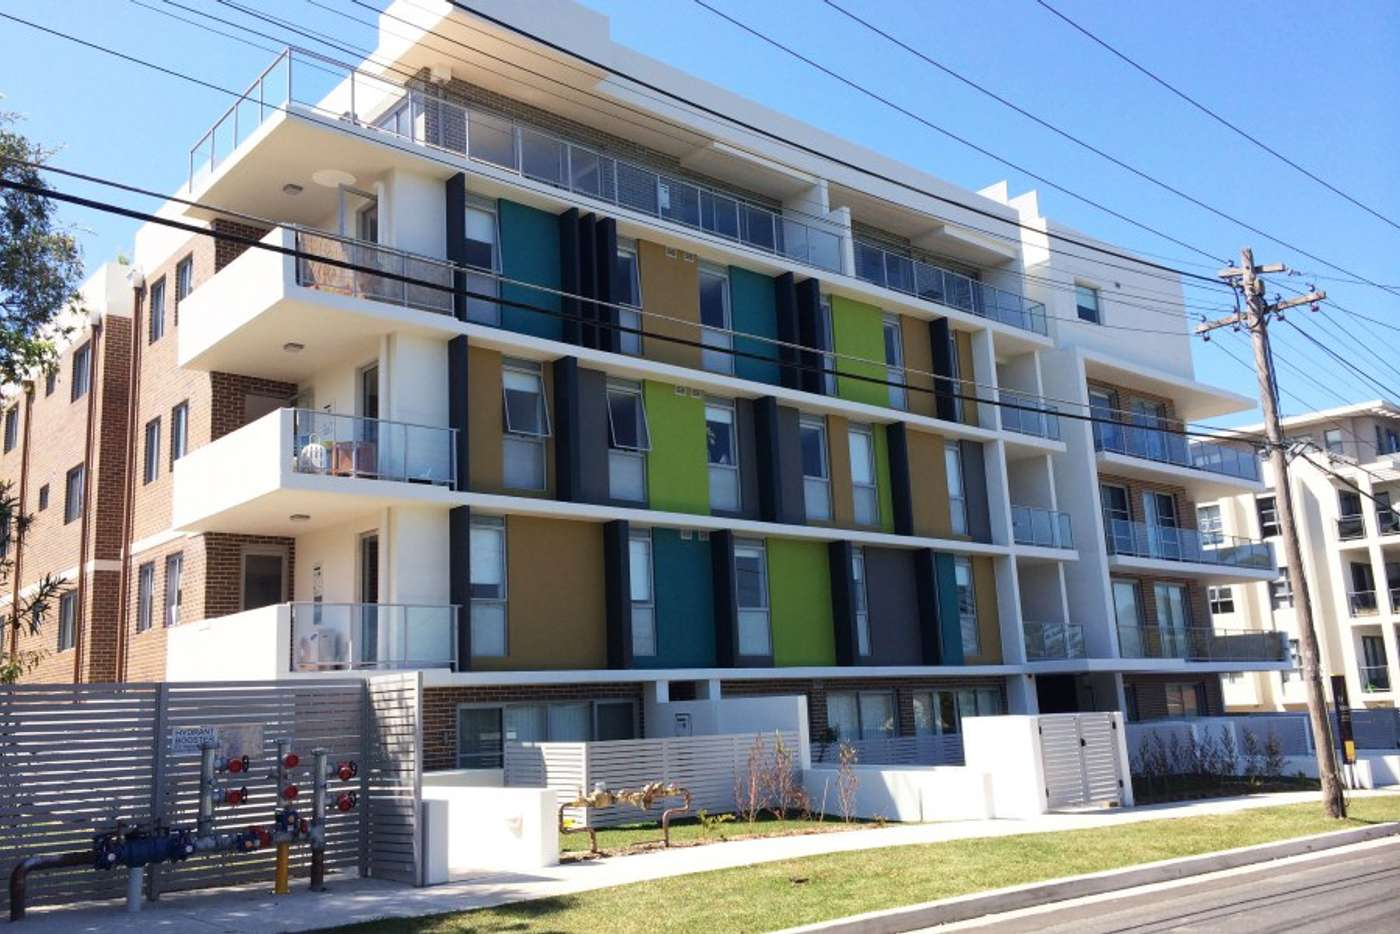 Main view of Homely apartment listing, 19/41-45 Mindarie Street, Lane Cove North NSW 2066